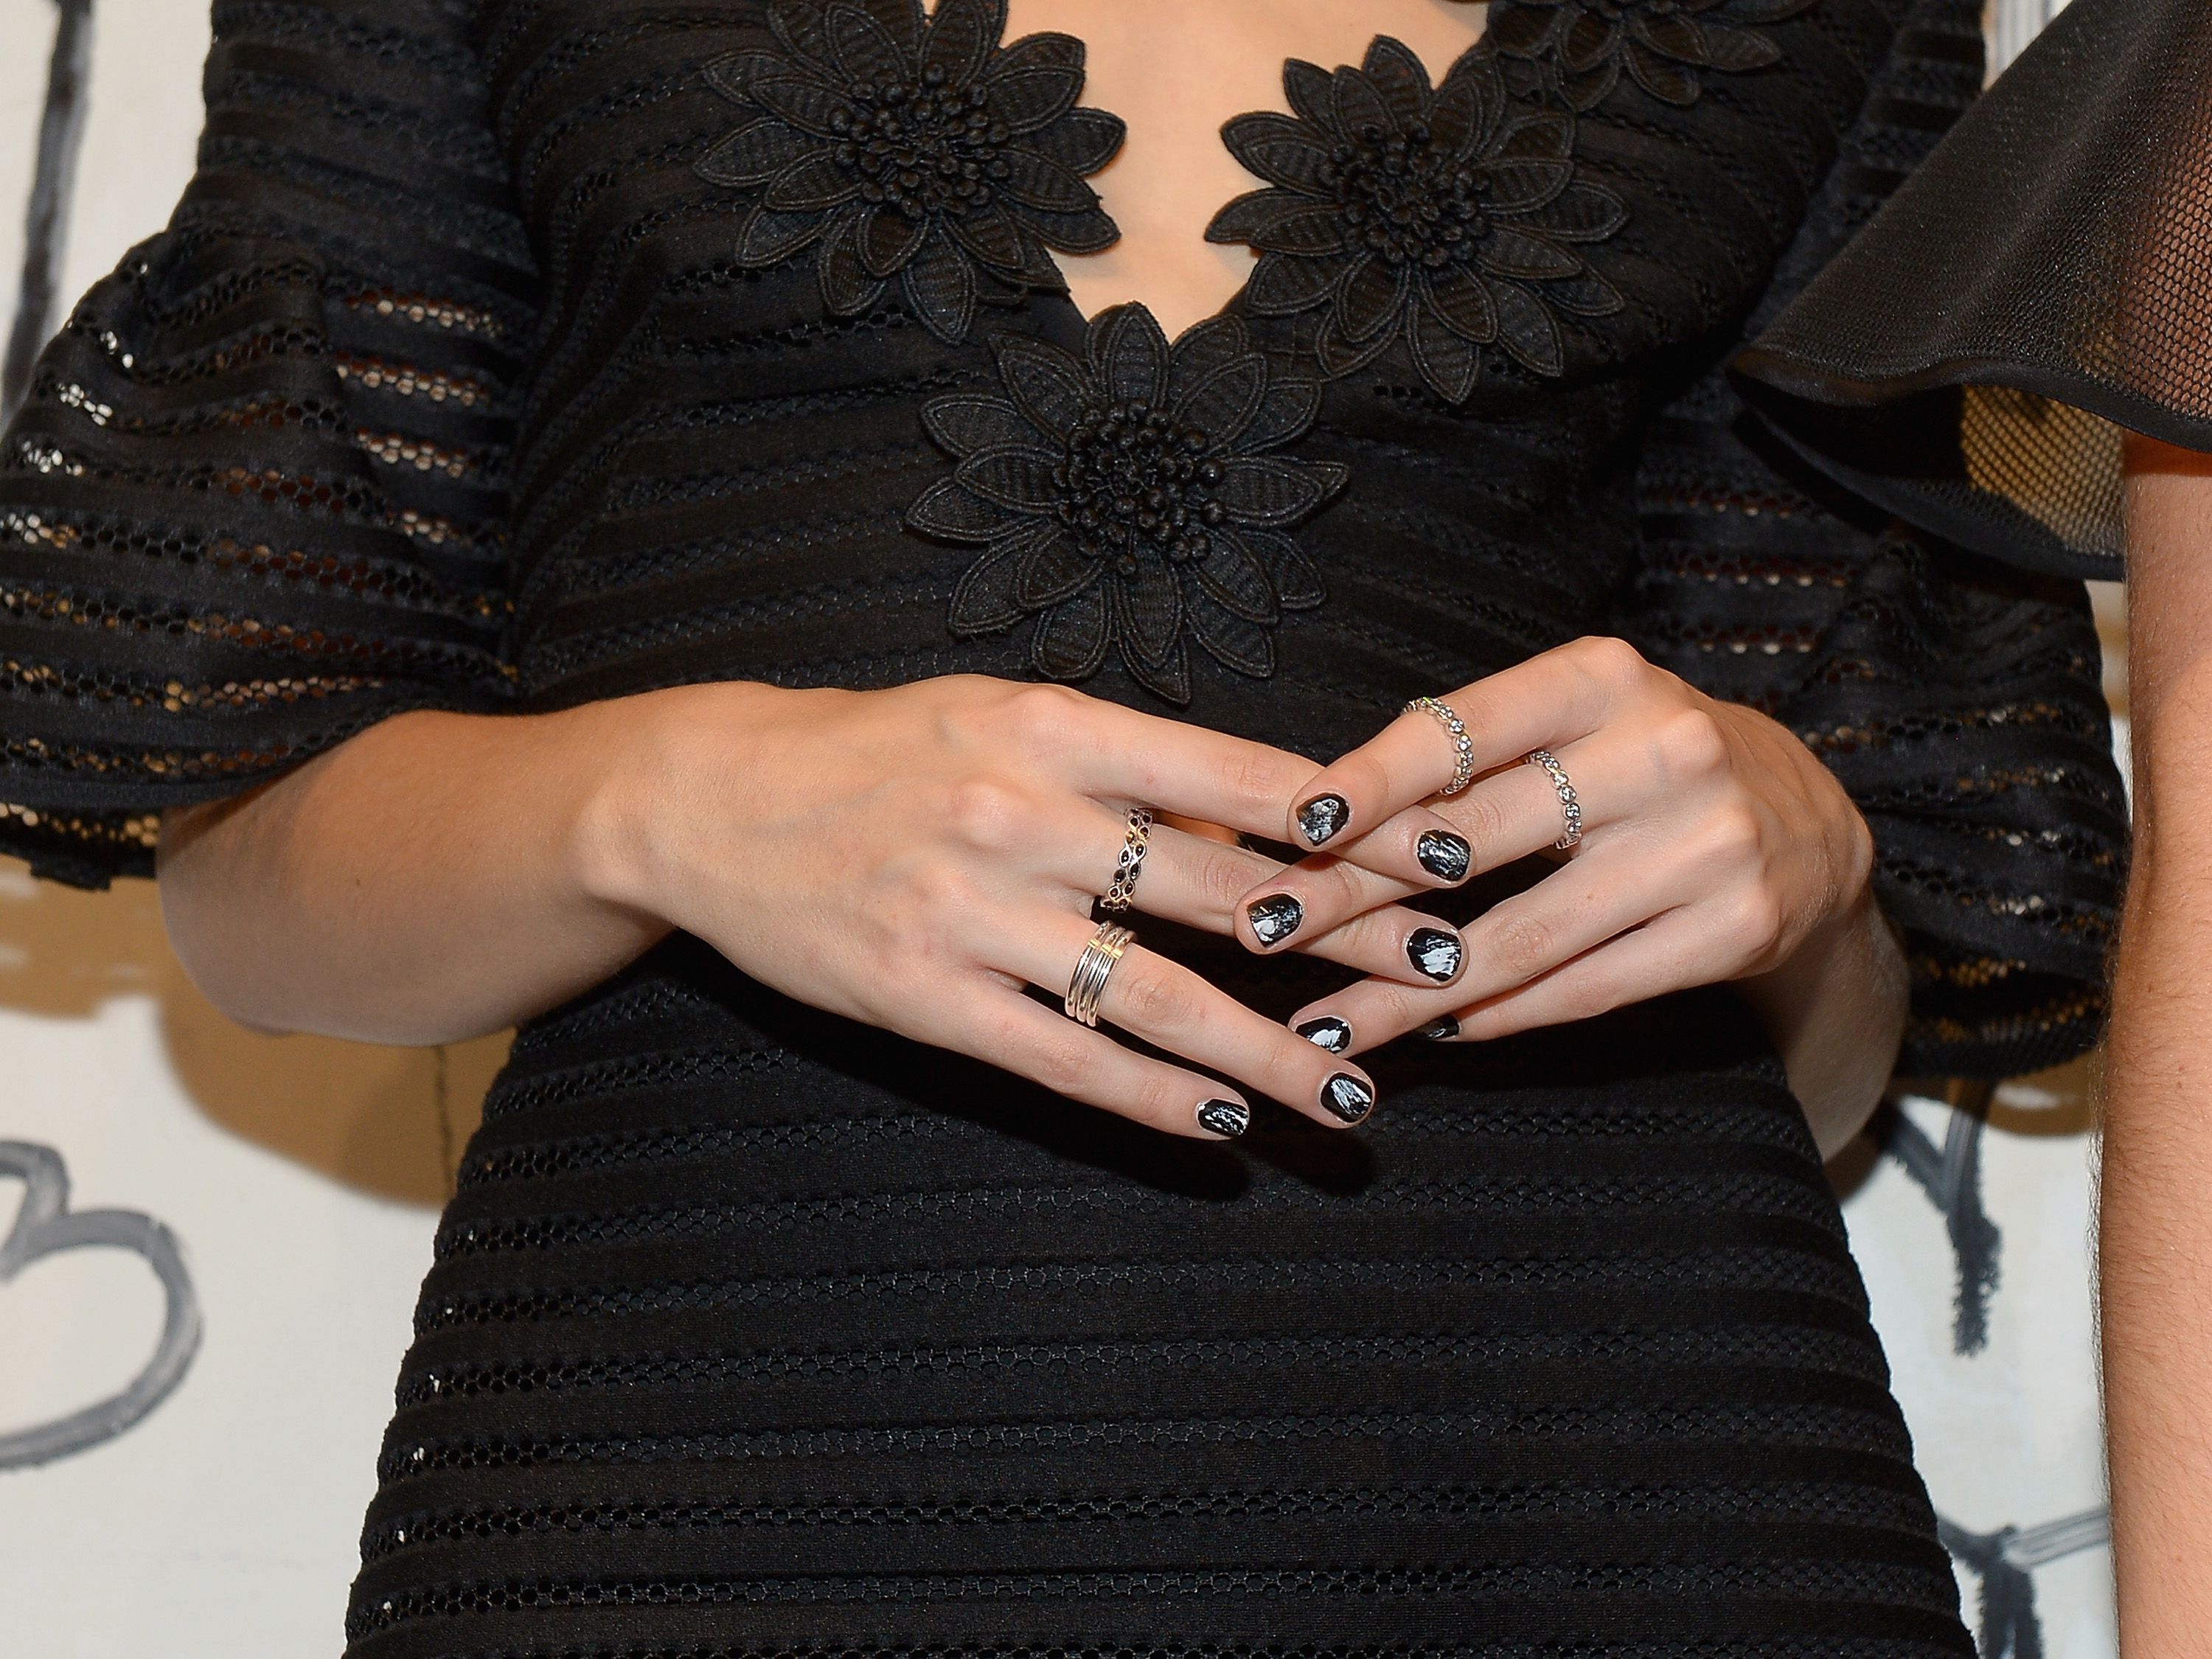 11 Creative Ways To Wear Black Nail Polish